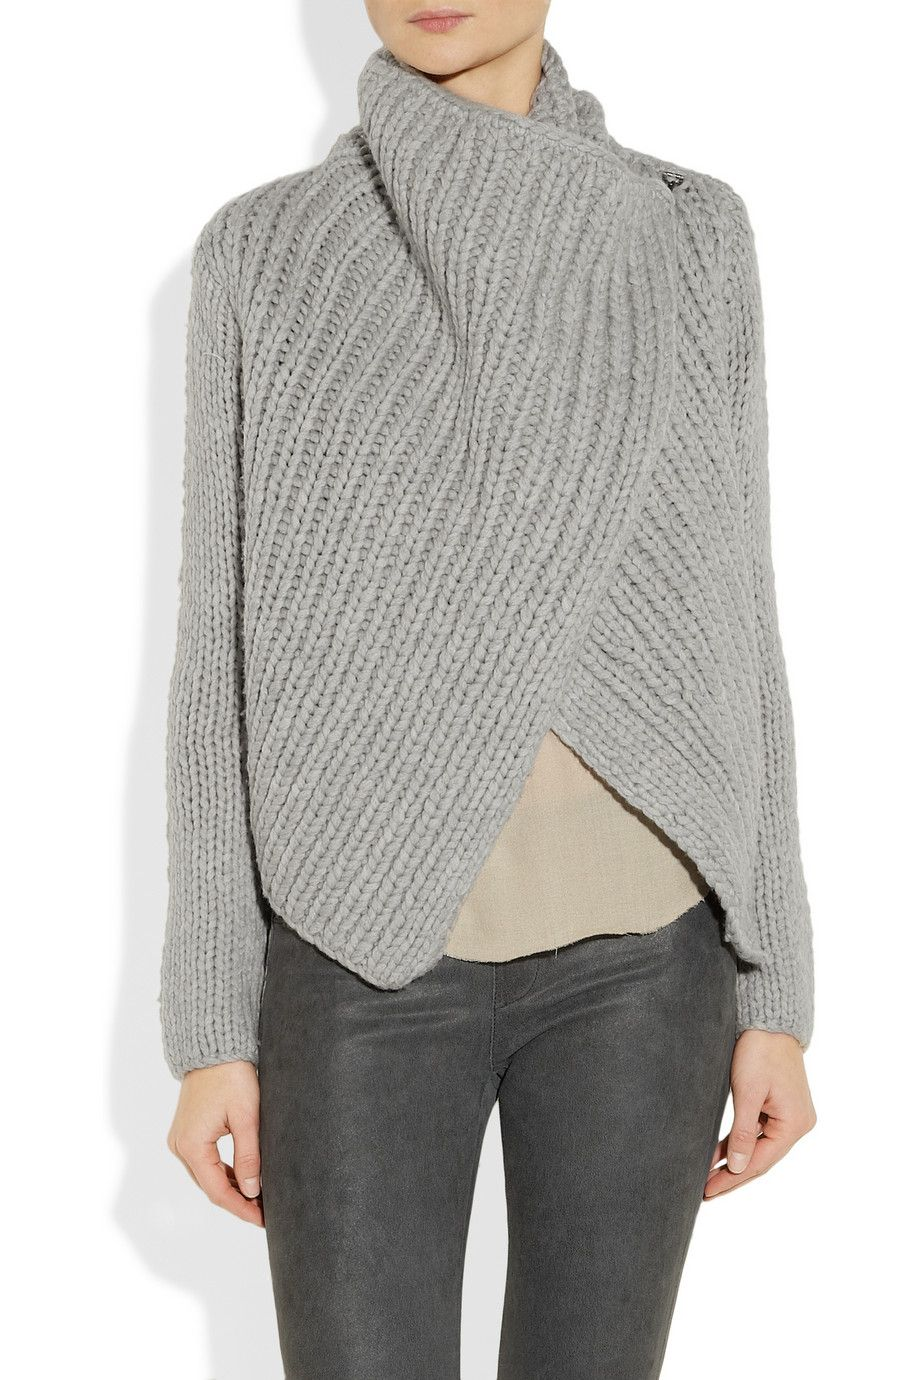 Knit A Sweater Easy : Helmut lang bulky rib knit sweater love the easy wrap